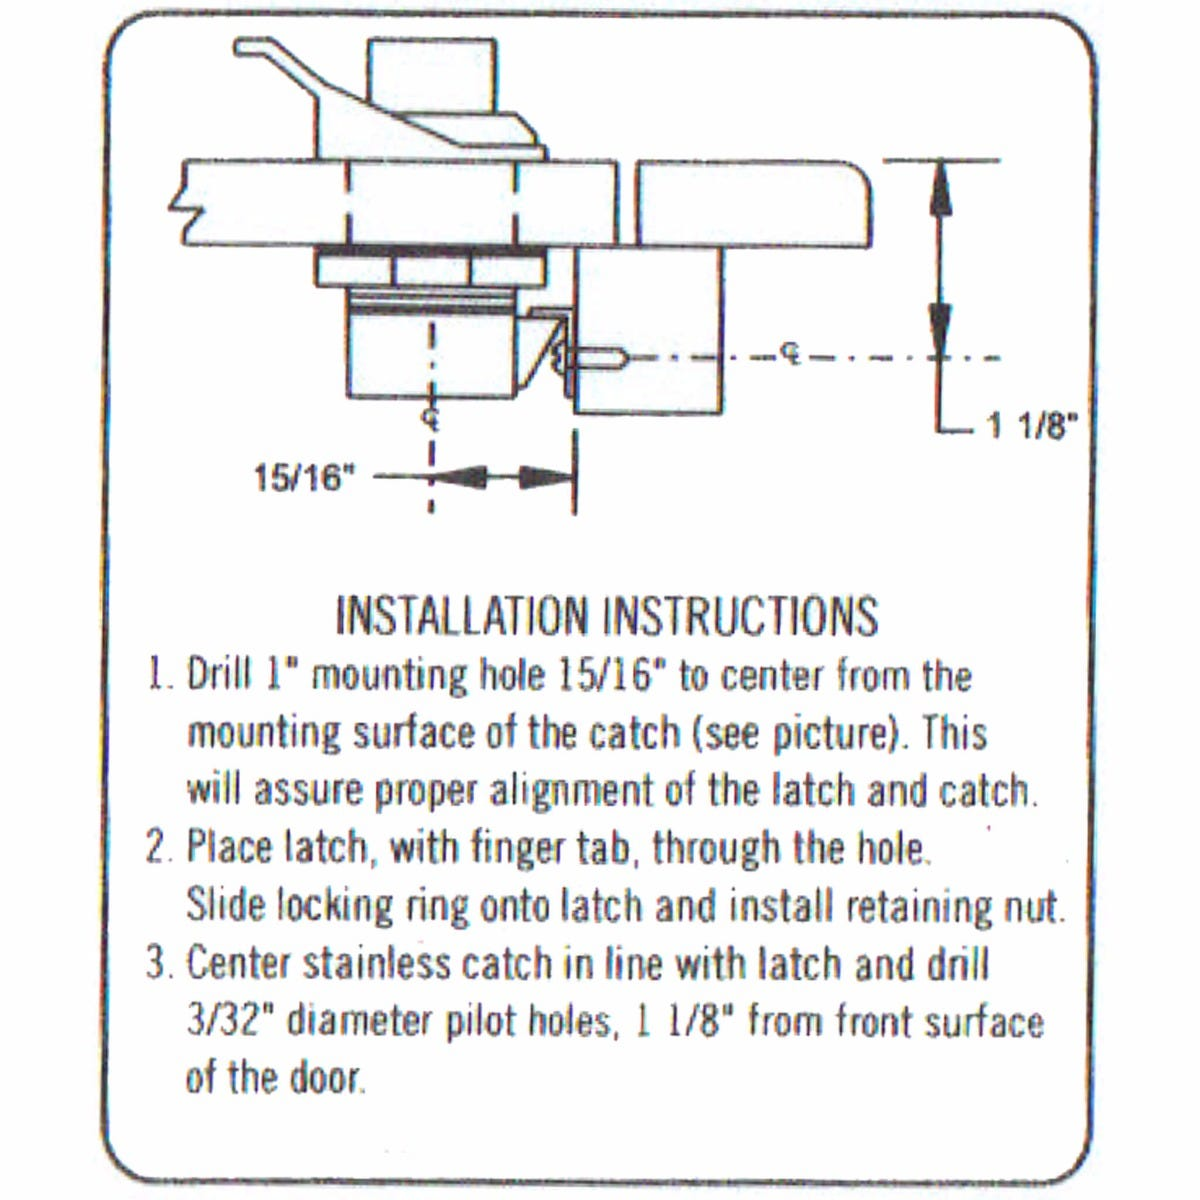 Southco Push Button Glove Box Latchhtml Diagram How To Replace A Defective Sliding Door Latch Ford Drawing